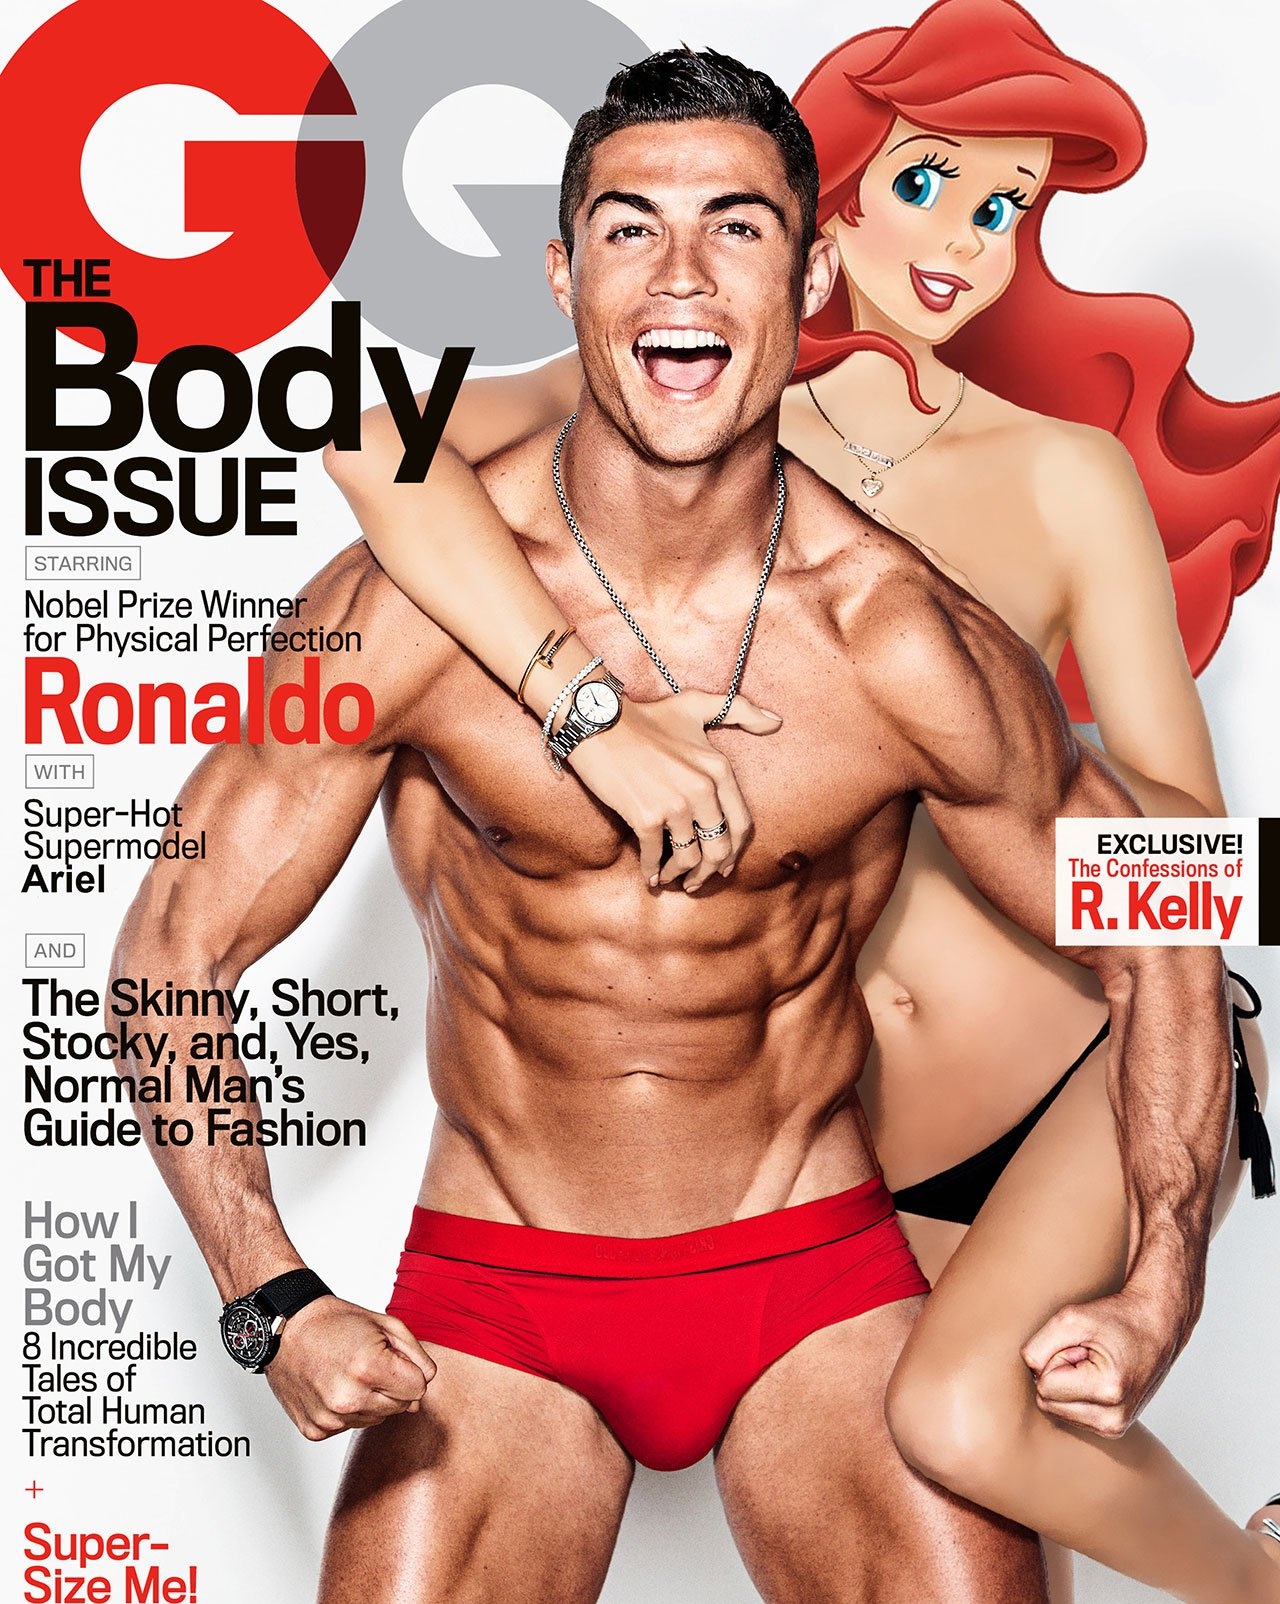 f2_animation_in_reality_by_gregory_masouras_christiano_ronaldo_and_alessandra_ambrosio_as_ariel_gq_body_issue_photographed_by_ben_watts_yatzer